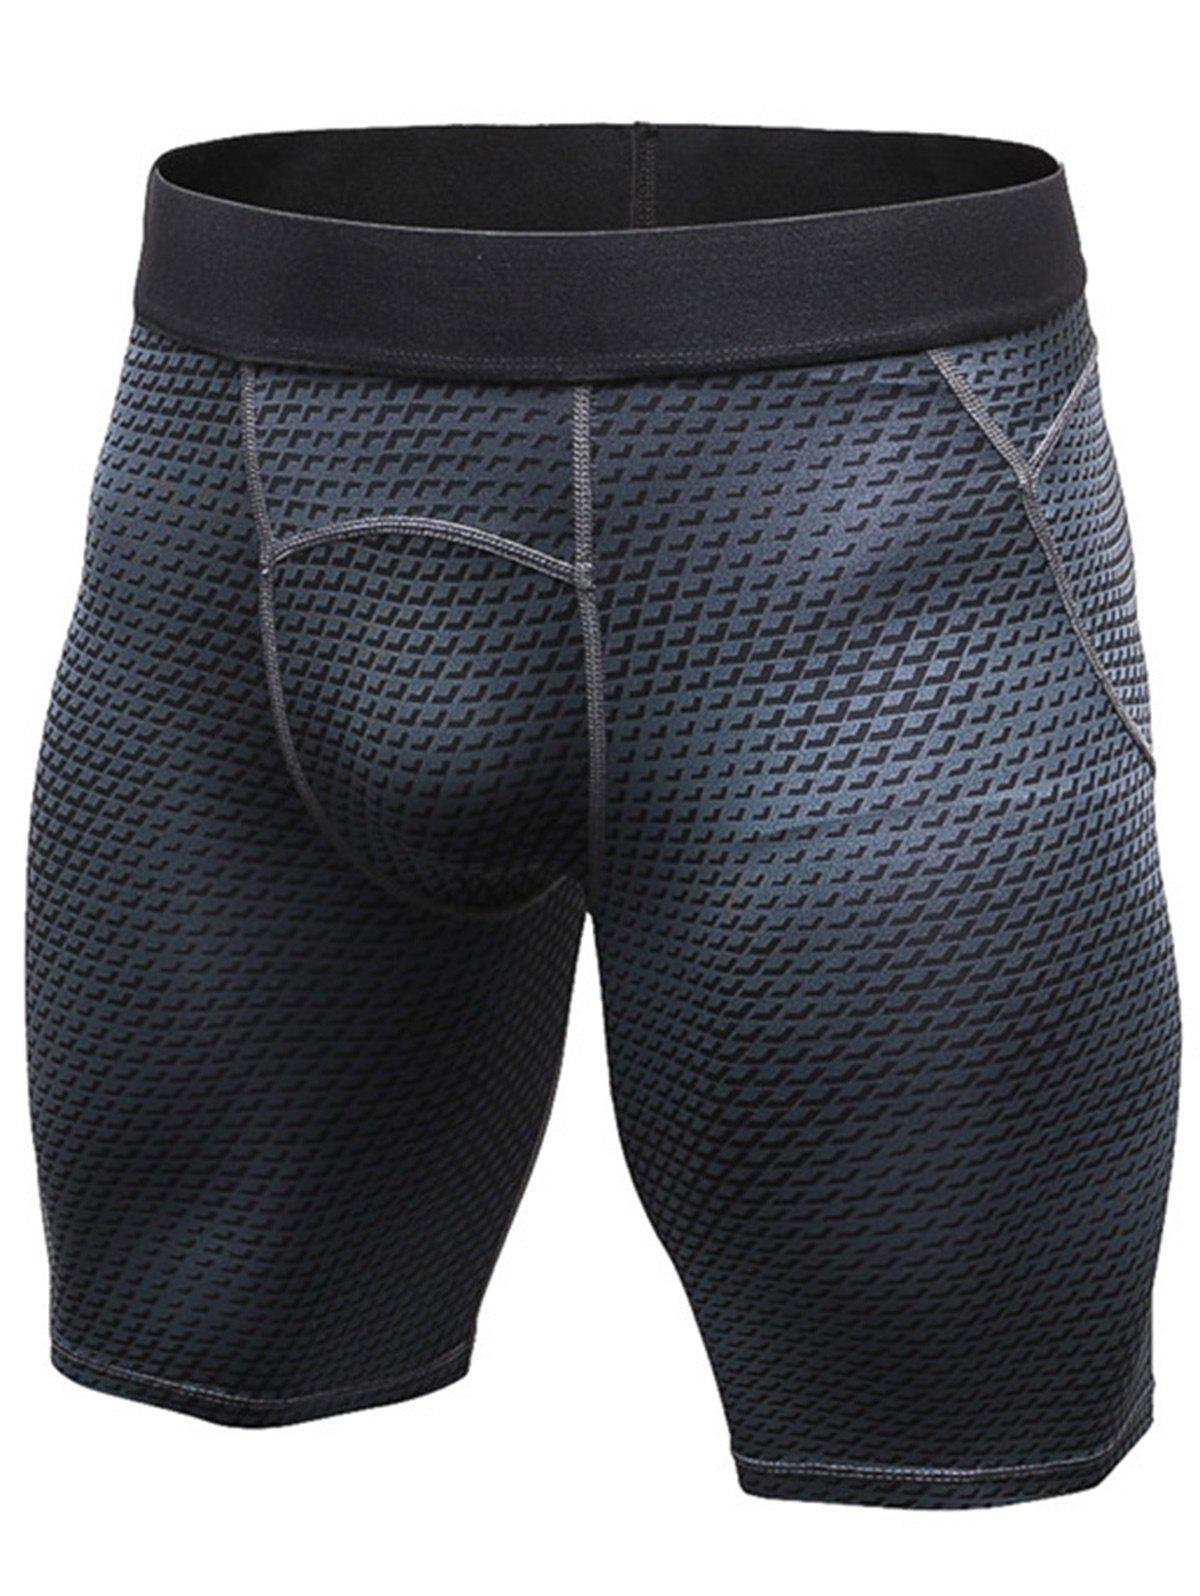 3D Geometric Print Fitted Quick Dry Gym Shorts - BLACK M